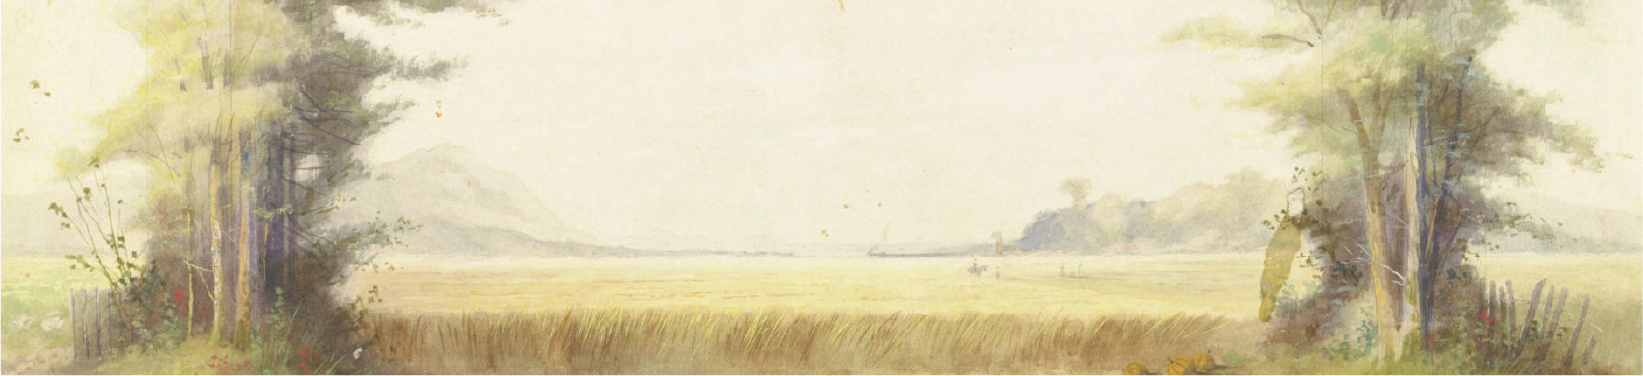 Landscape of trees with open field. By Wood, John Z. Part of the Twin City Scenic Company Collection, University of Minnesota Performing Arts Archives.